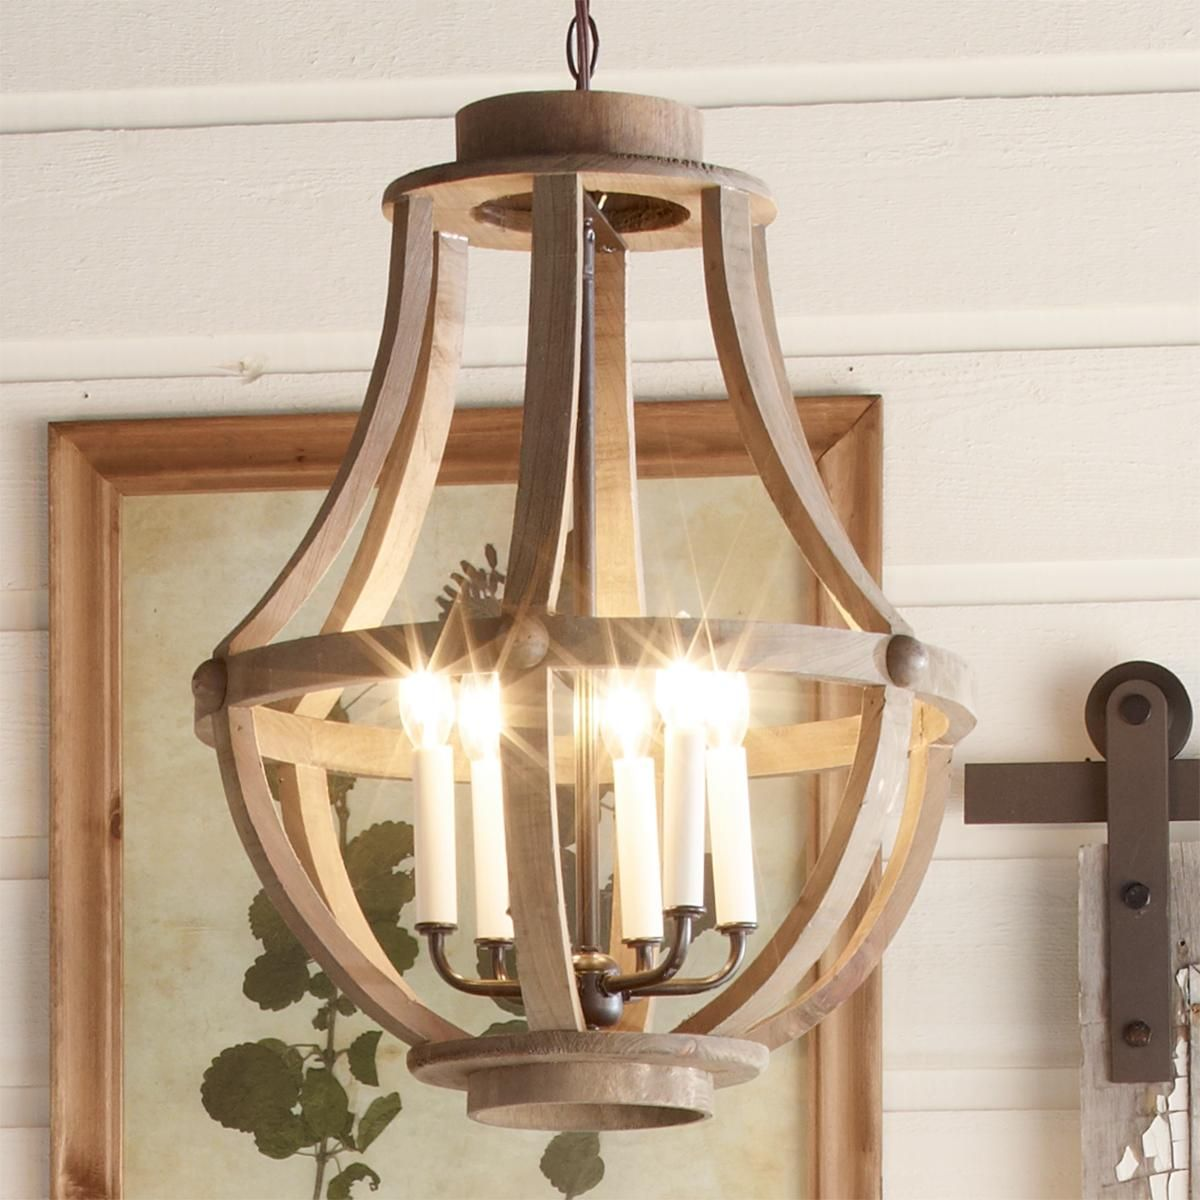 Rustic Wood Basket Light From Shades Of Light Rustic Light